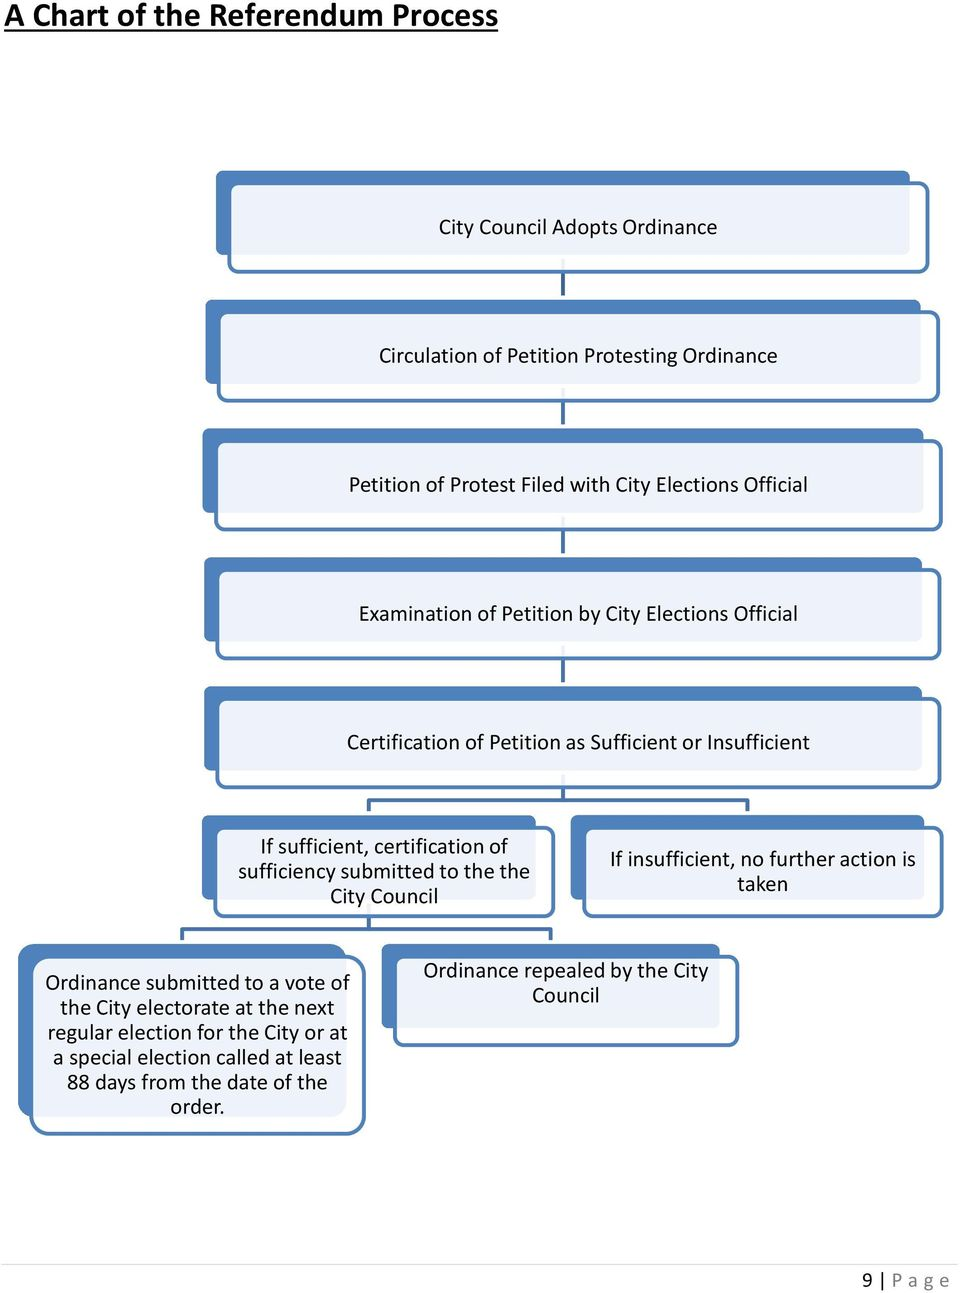 certification of sufficiency submitted to the the City Council If insufficient, no further action is taken Ordinance submitted to a vote of the City